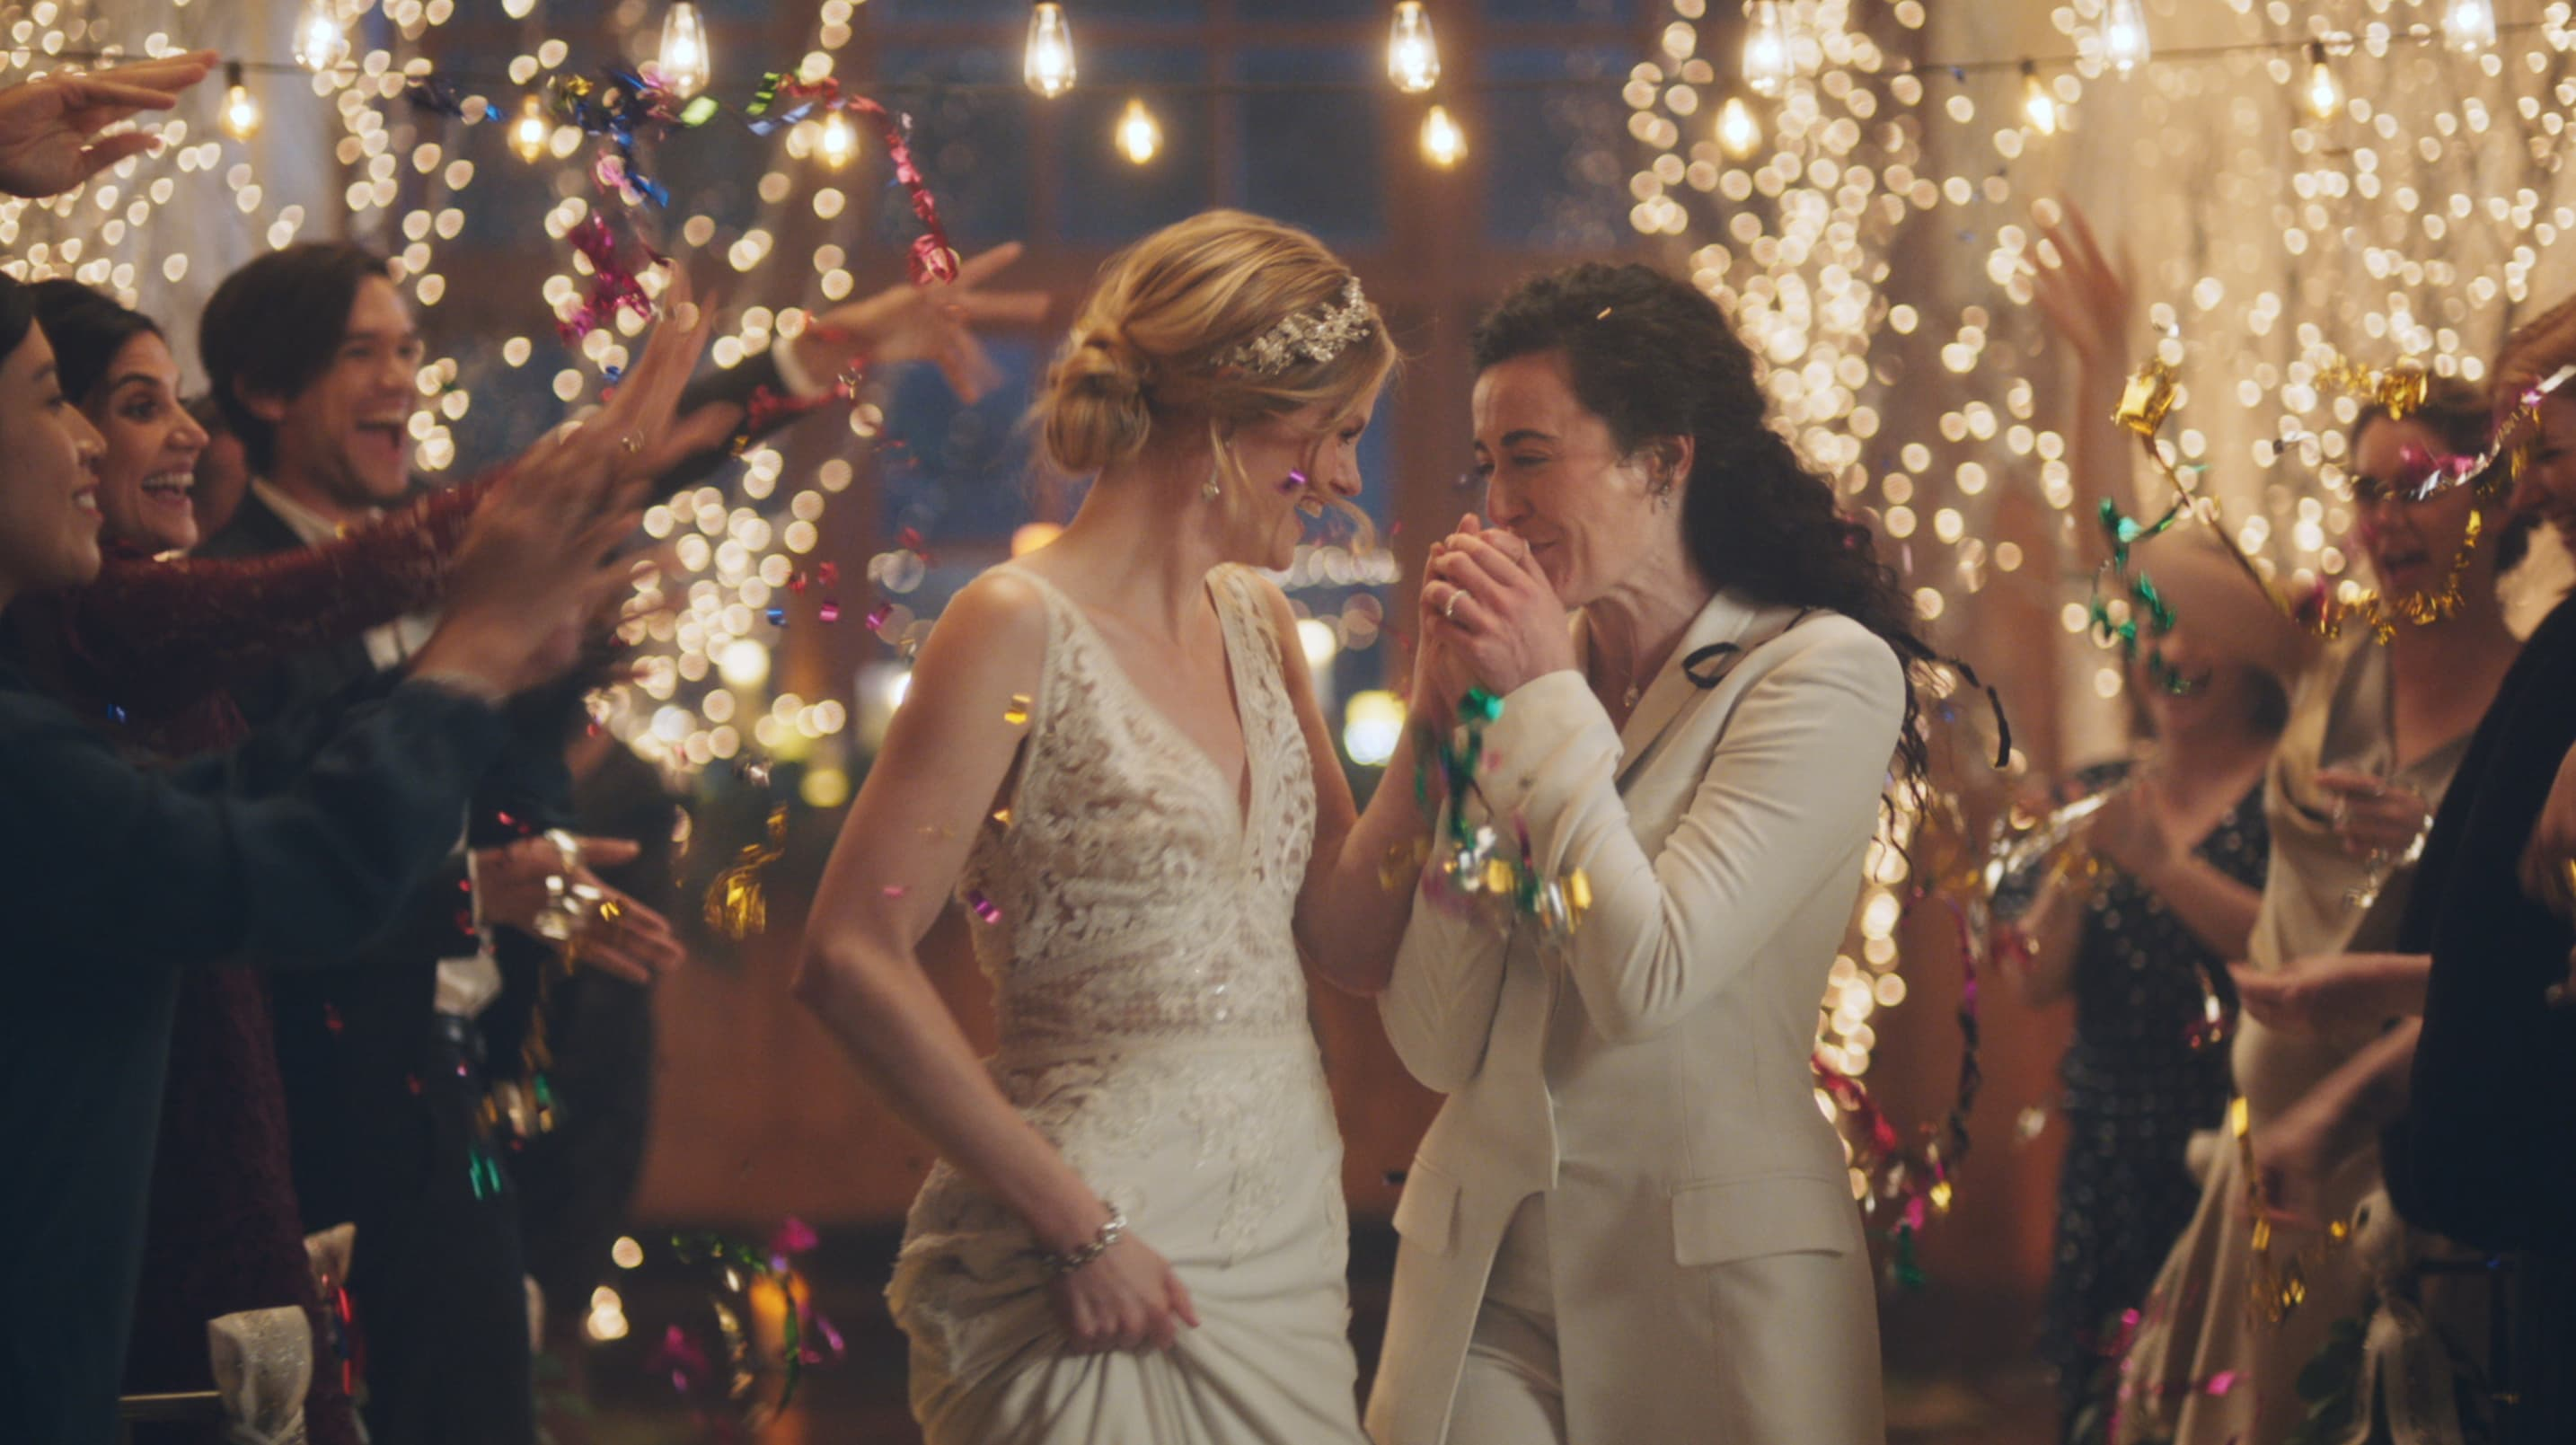 Zola pulls ads from Hallmark Channel after network censored brides kissing